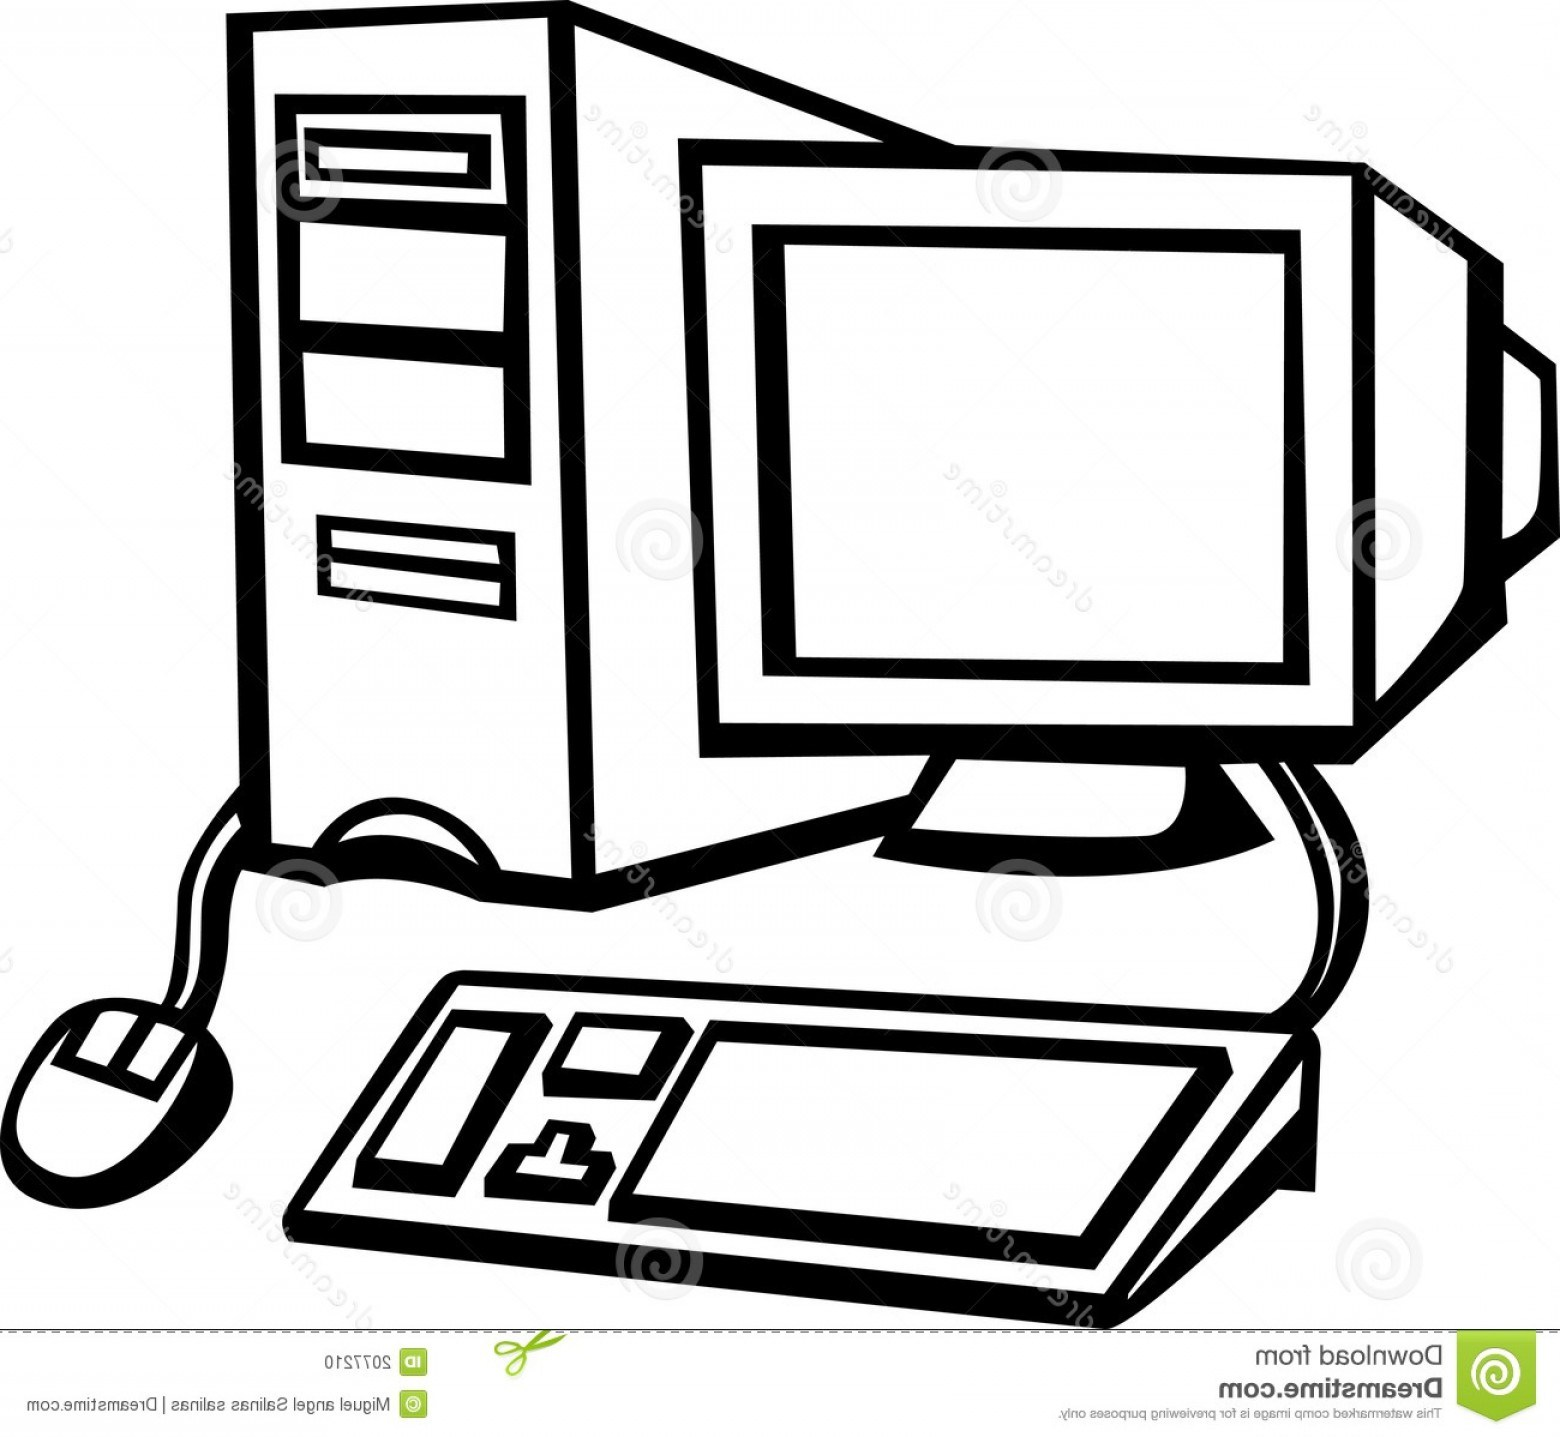 Clipart black and white computer 1 » Clipart Portal.